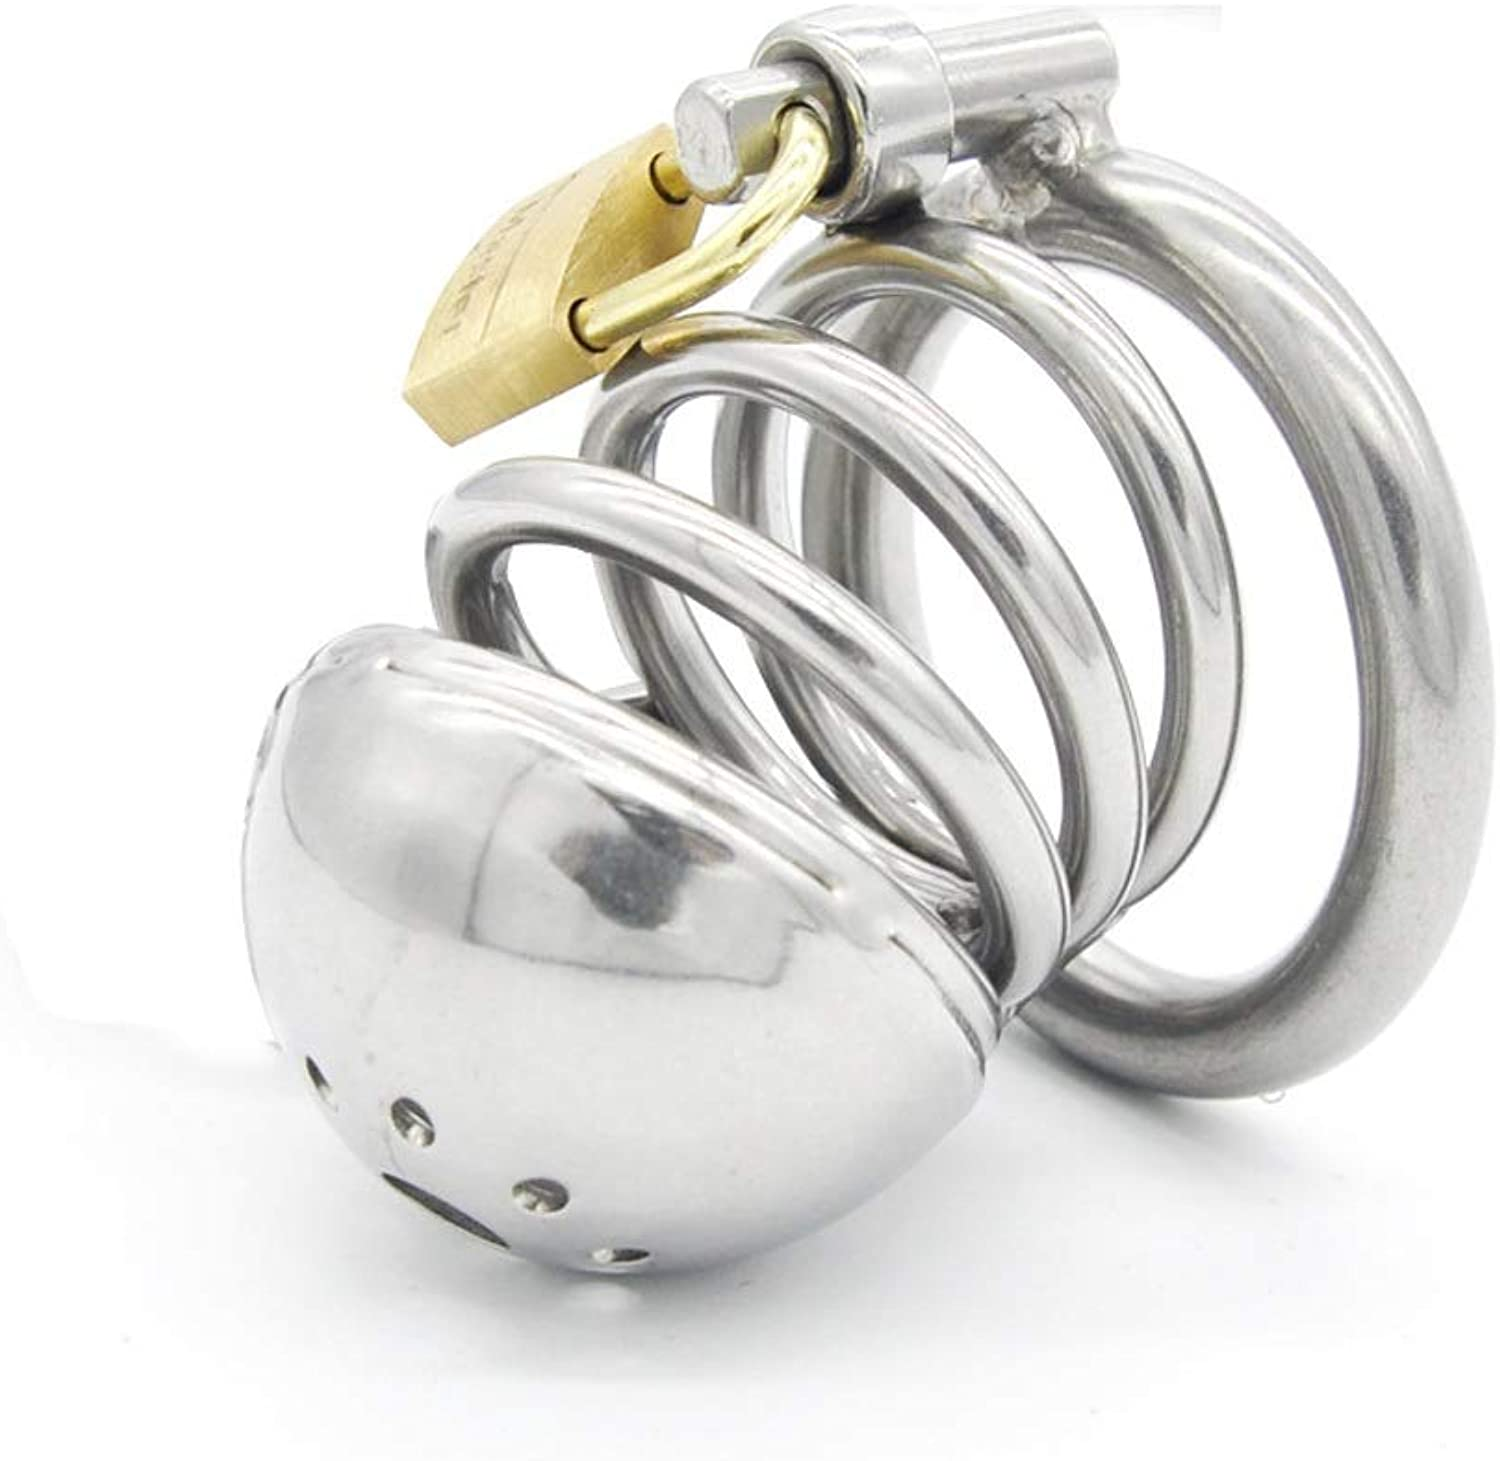 SLH Creative Male Stainless Steel Penis Lock Stimulating Toy Cage Length 6cm and Diameter 3.5cm